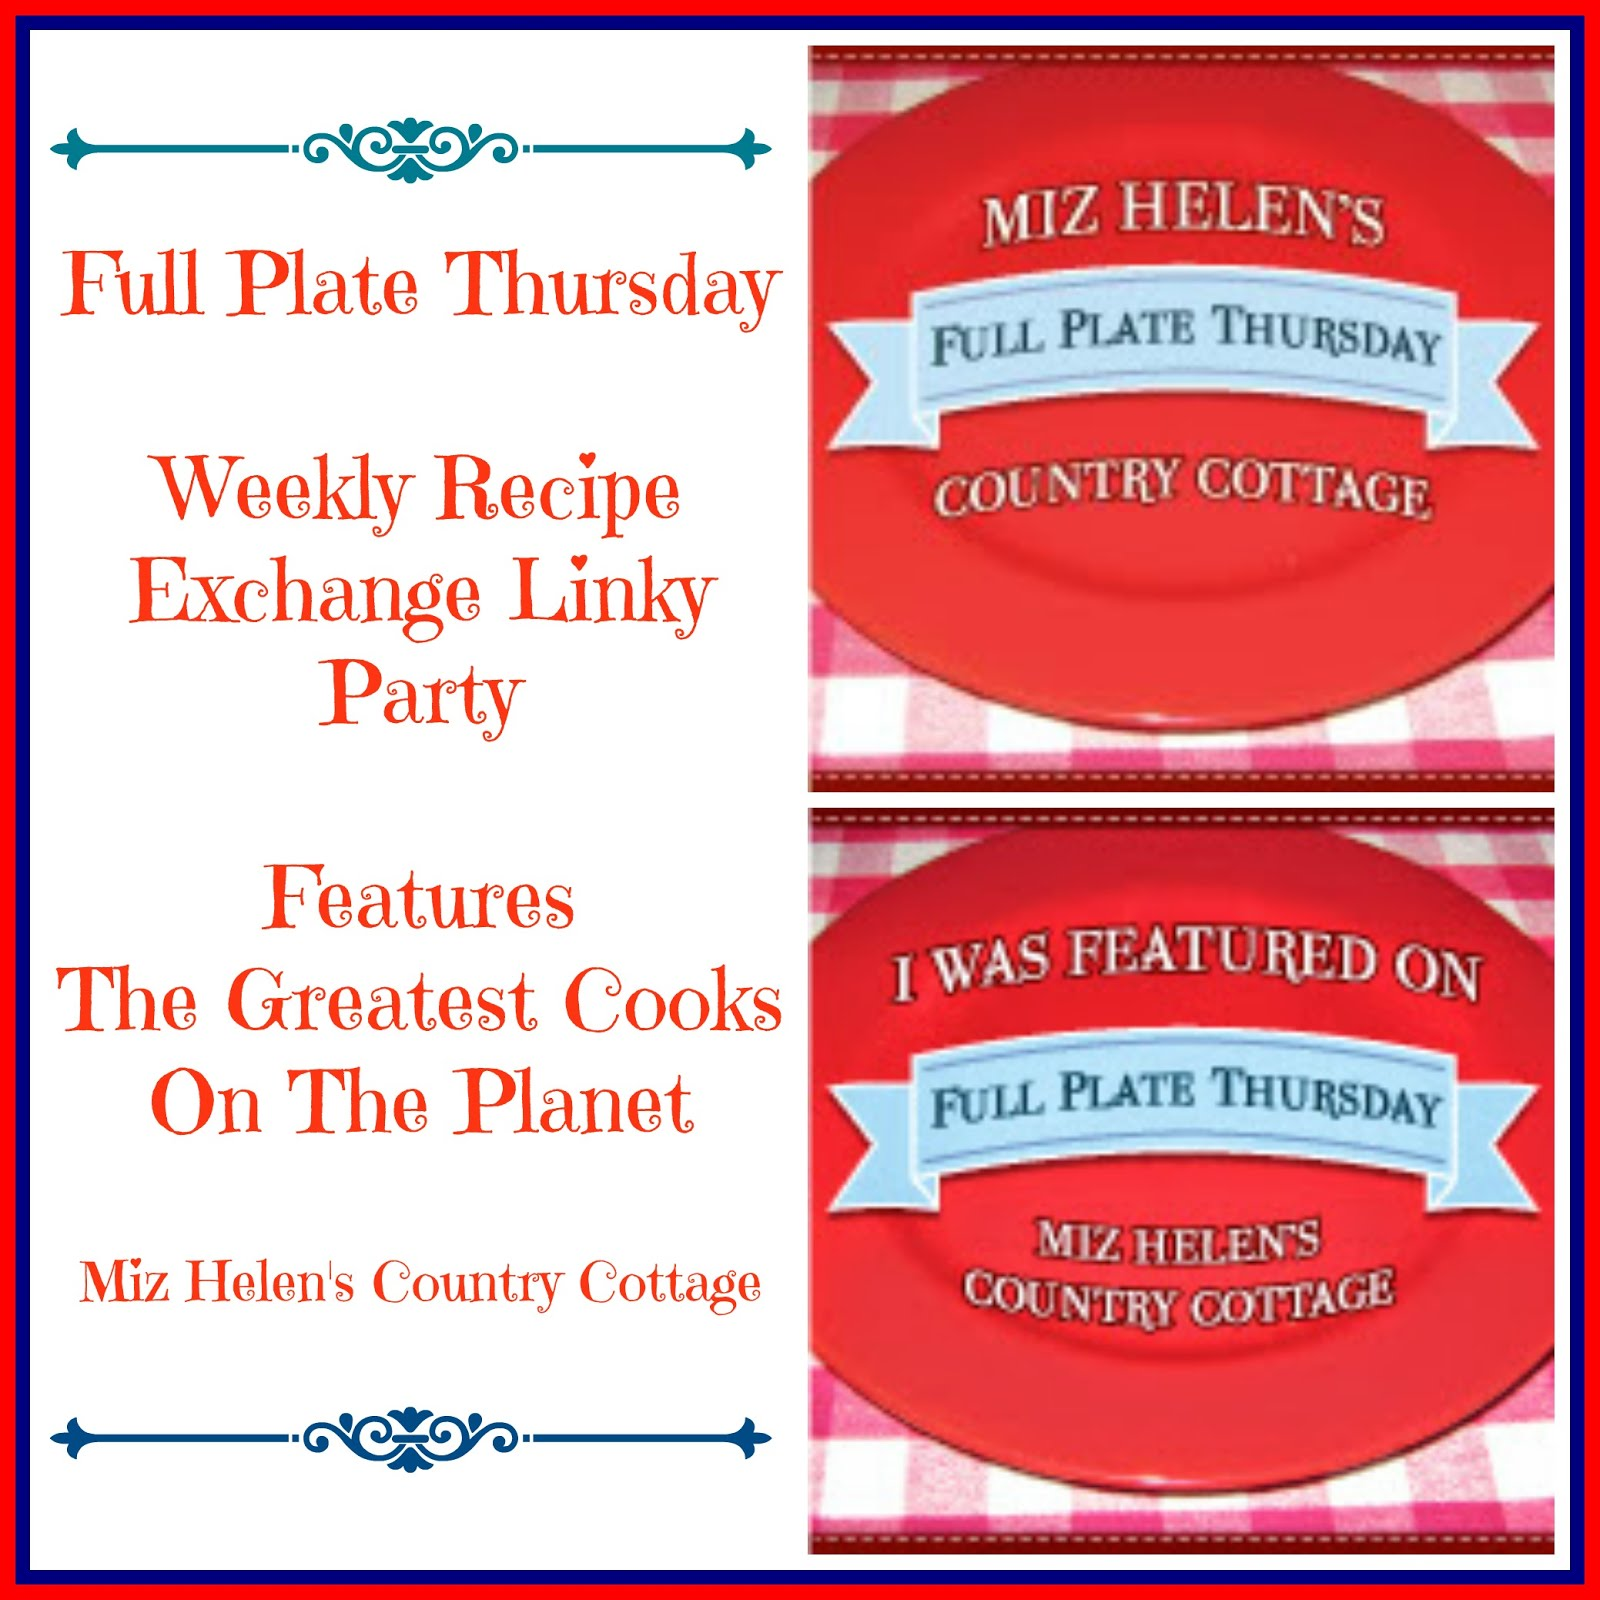 Full Plate Thursday,415 Current Party